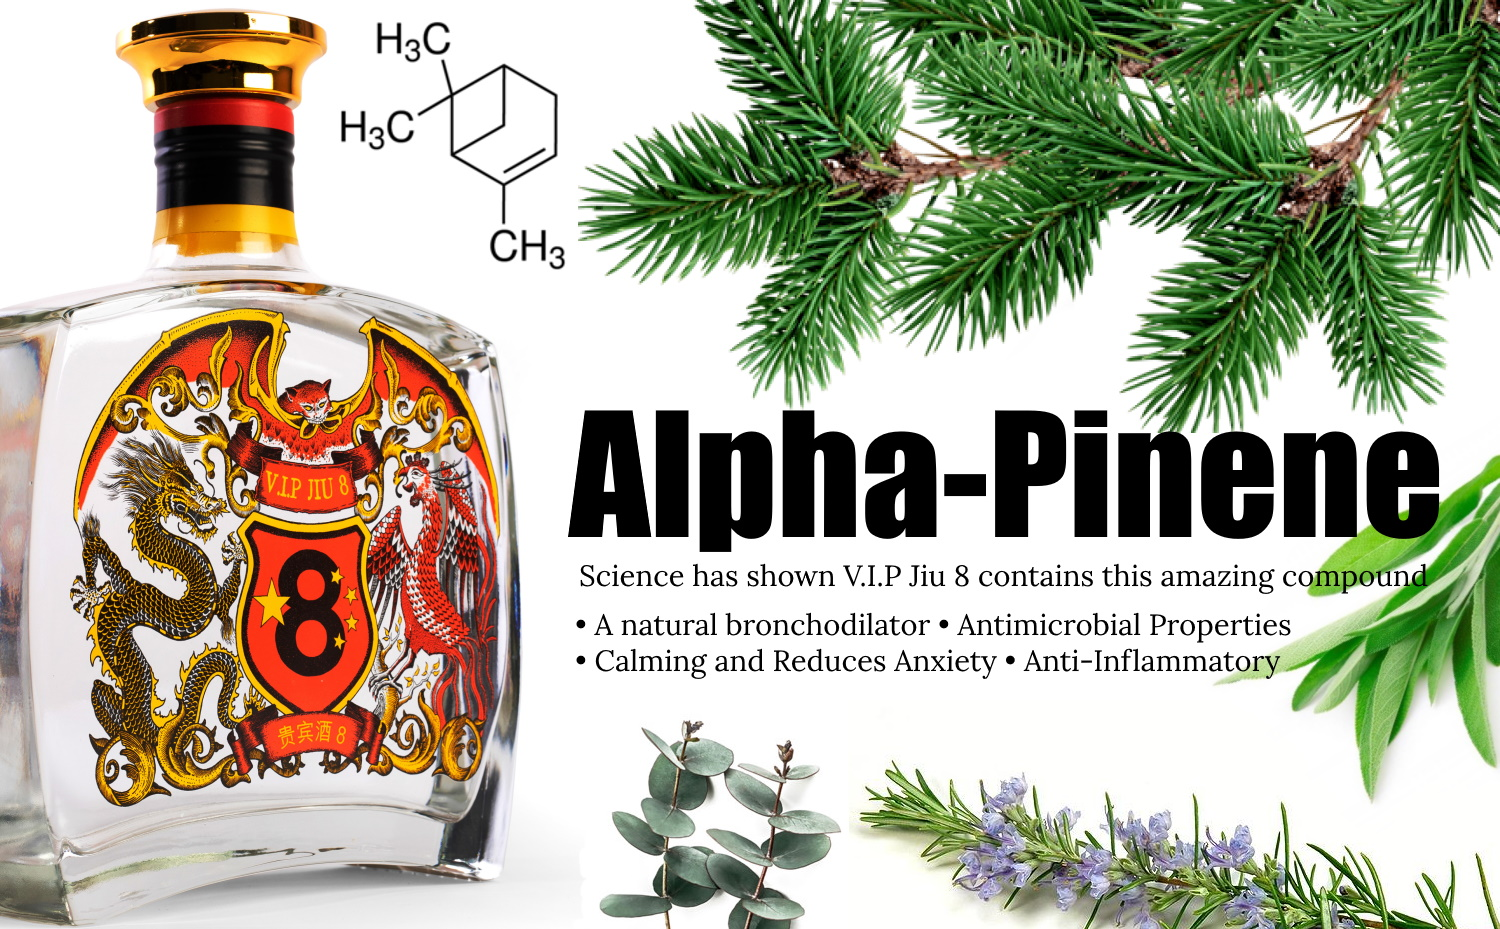 Baijiu Health Benefits? V.I.P Jiu 8 And Alpha-Pinene - Terpene